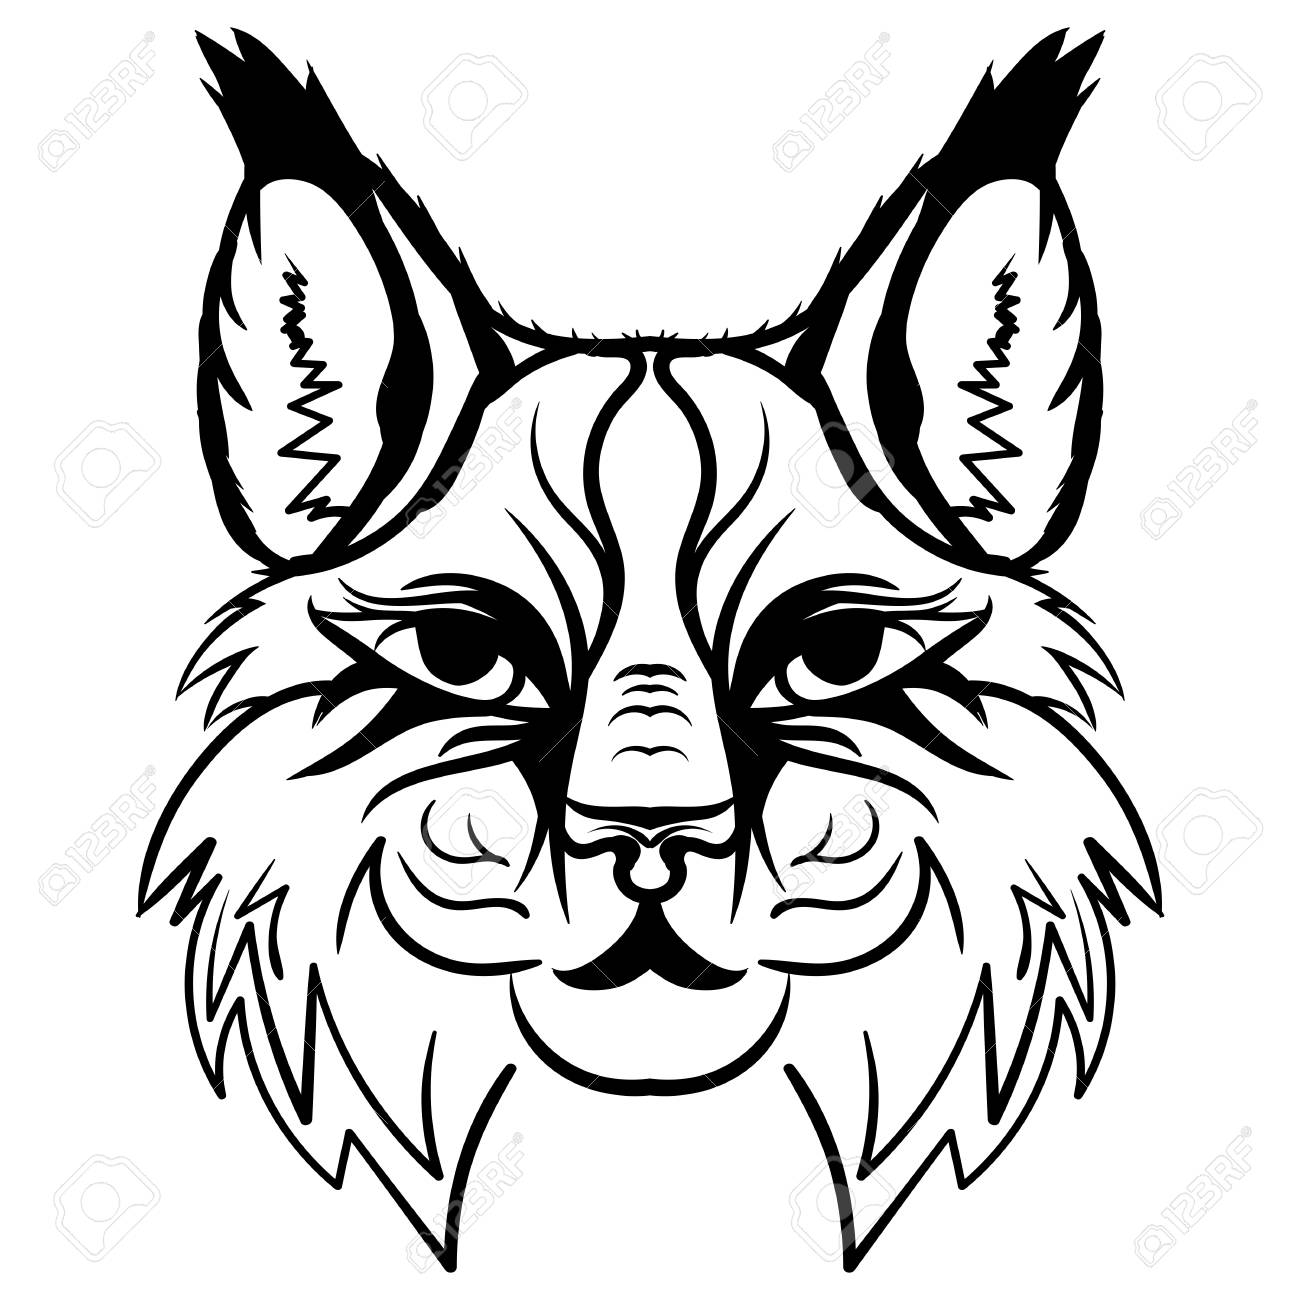 1300x1300 Hand Drawn Lynx Head Animal Isolated. Doodle Line Graphic Design